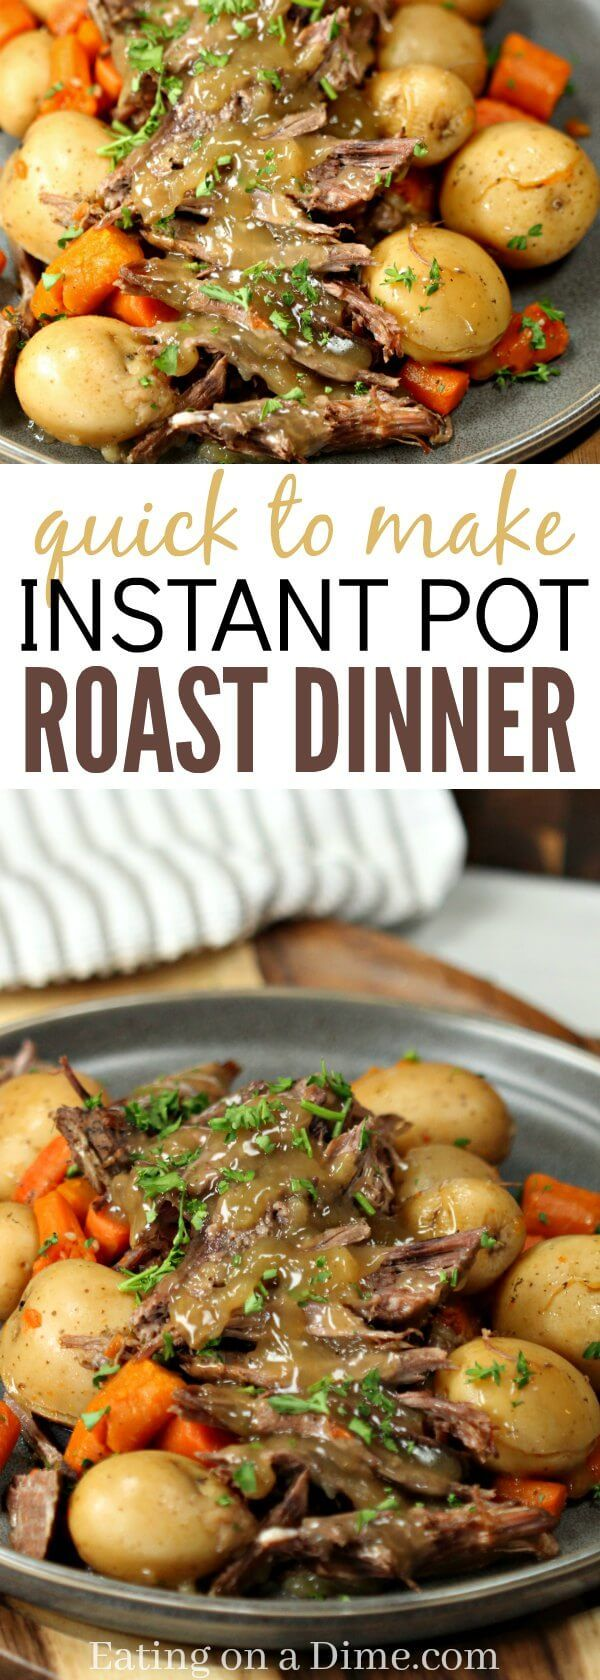 This Instant Pot Roast Dinner Recipe is amazing! It is truly the best Pressure Cooker Pot Roast Dinner recipe. The gravy is so delicious. You will see why it's the Best Pot Roast Recipe for the Instant Pot. The veggies are packed with flavor! Yum!